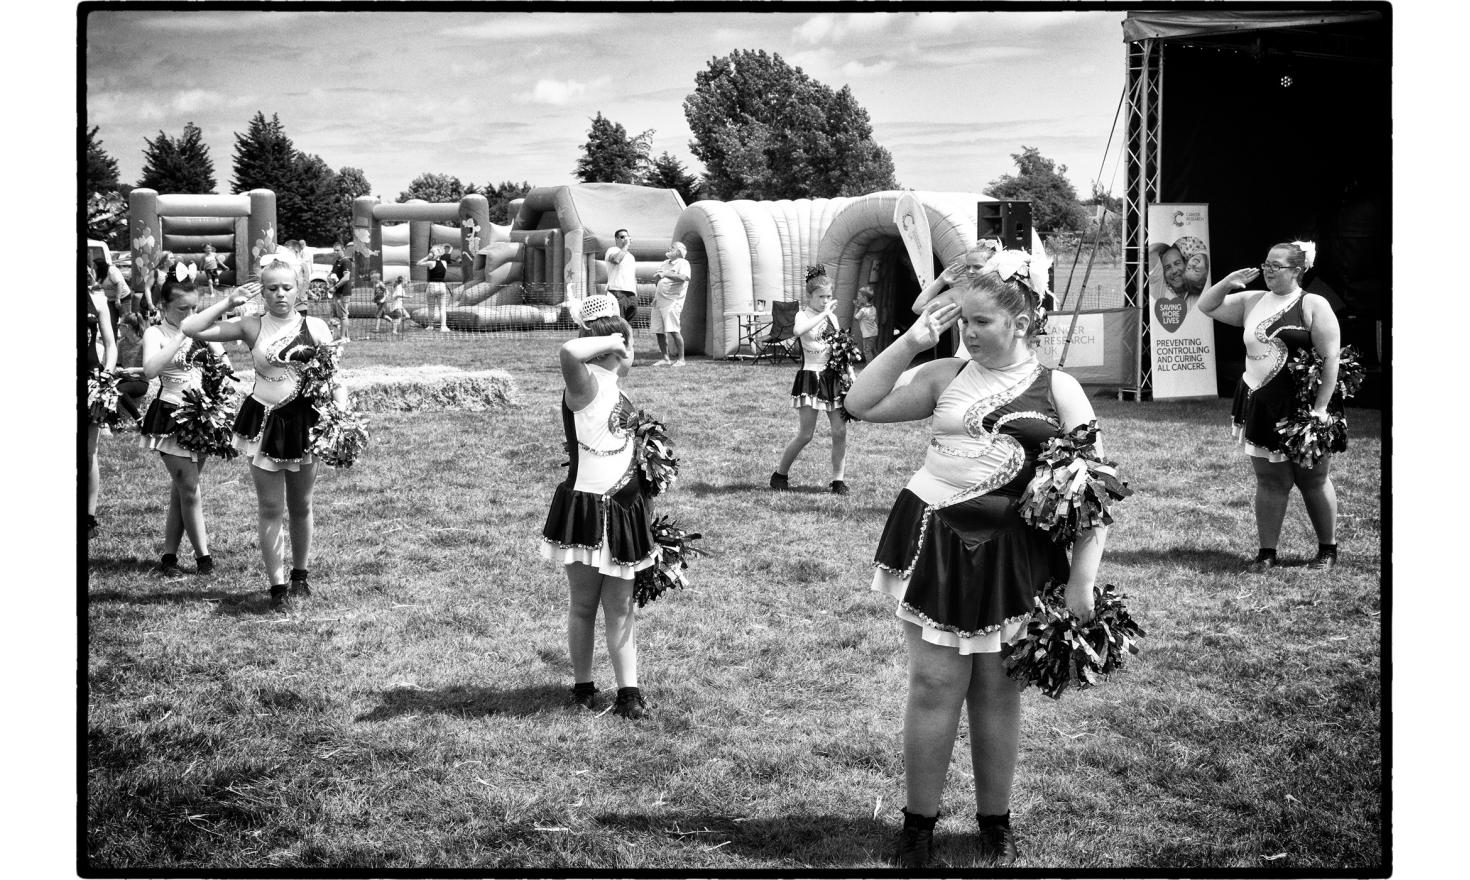 """""""Clacton relay for life"""", an event about cancer. Gathering with survivors to raise awareness and funds to fight Cancer. Music, dance with yougsters for the event. Little Clacton, England. July 2016."""